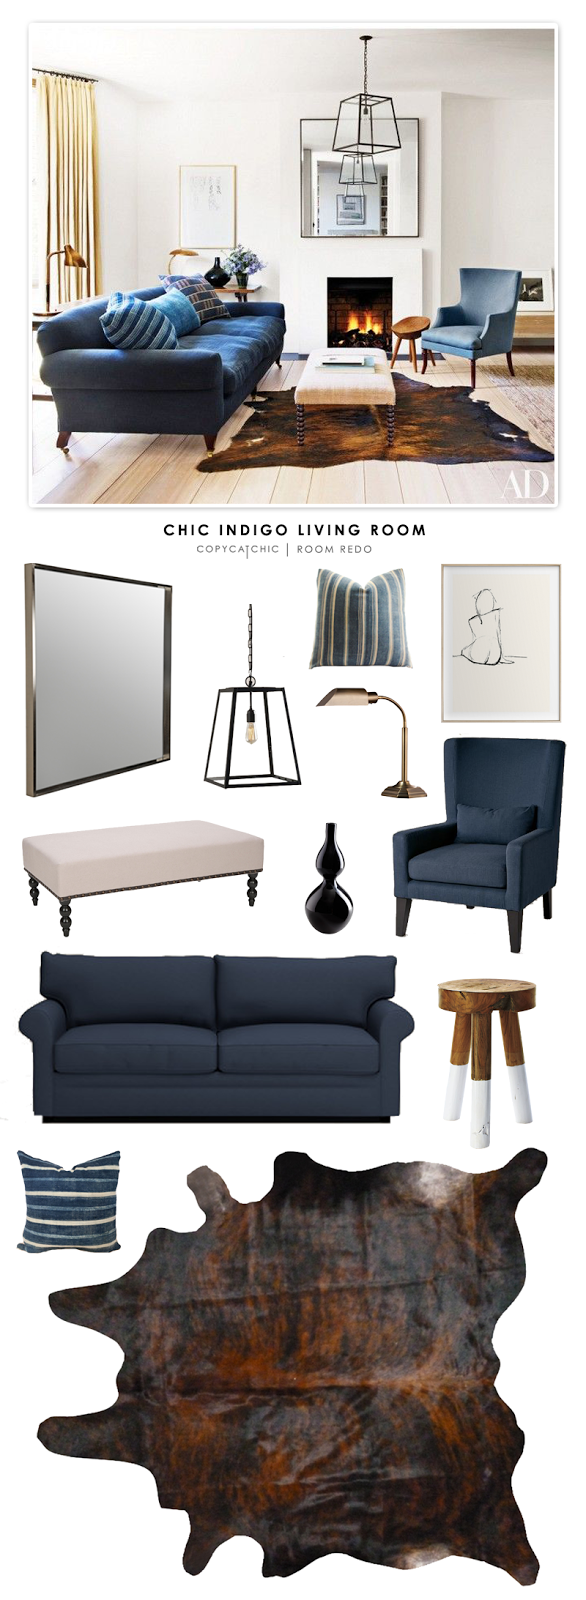 A Chic Indigo Living Room designed by Rose Uniacke featured in Architectural Digest and recreated for less by Copy Cat Chic